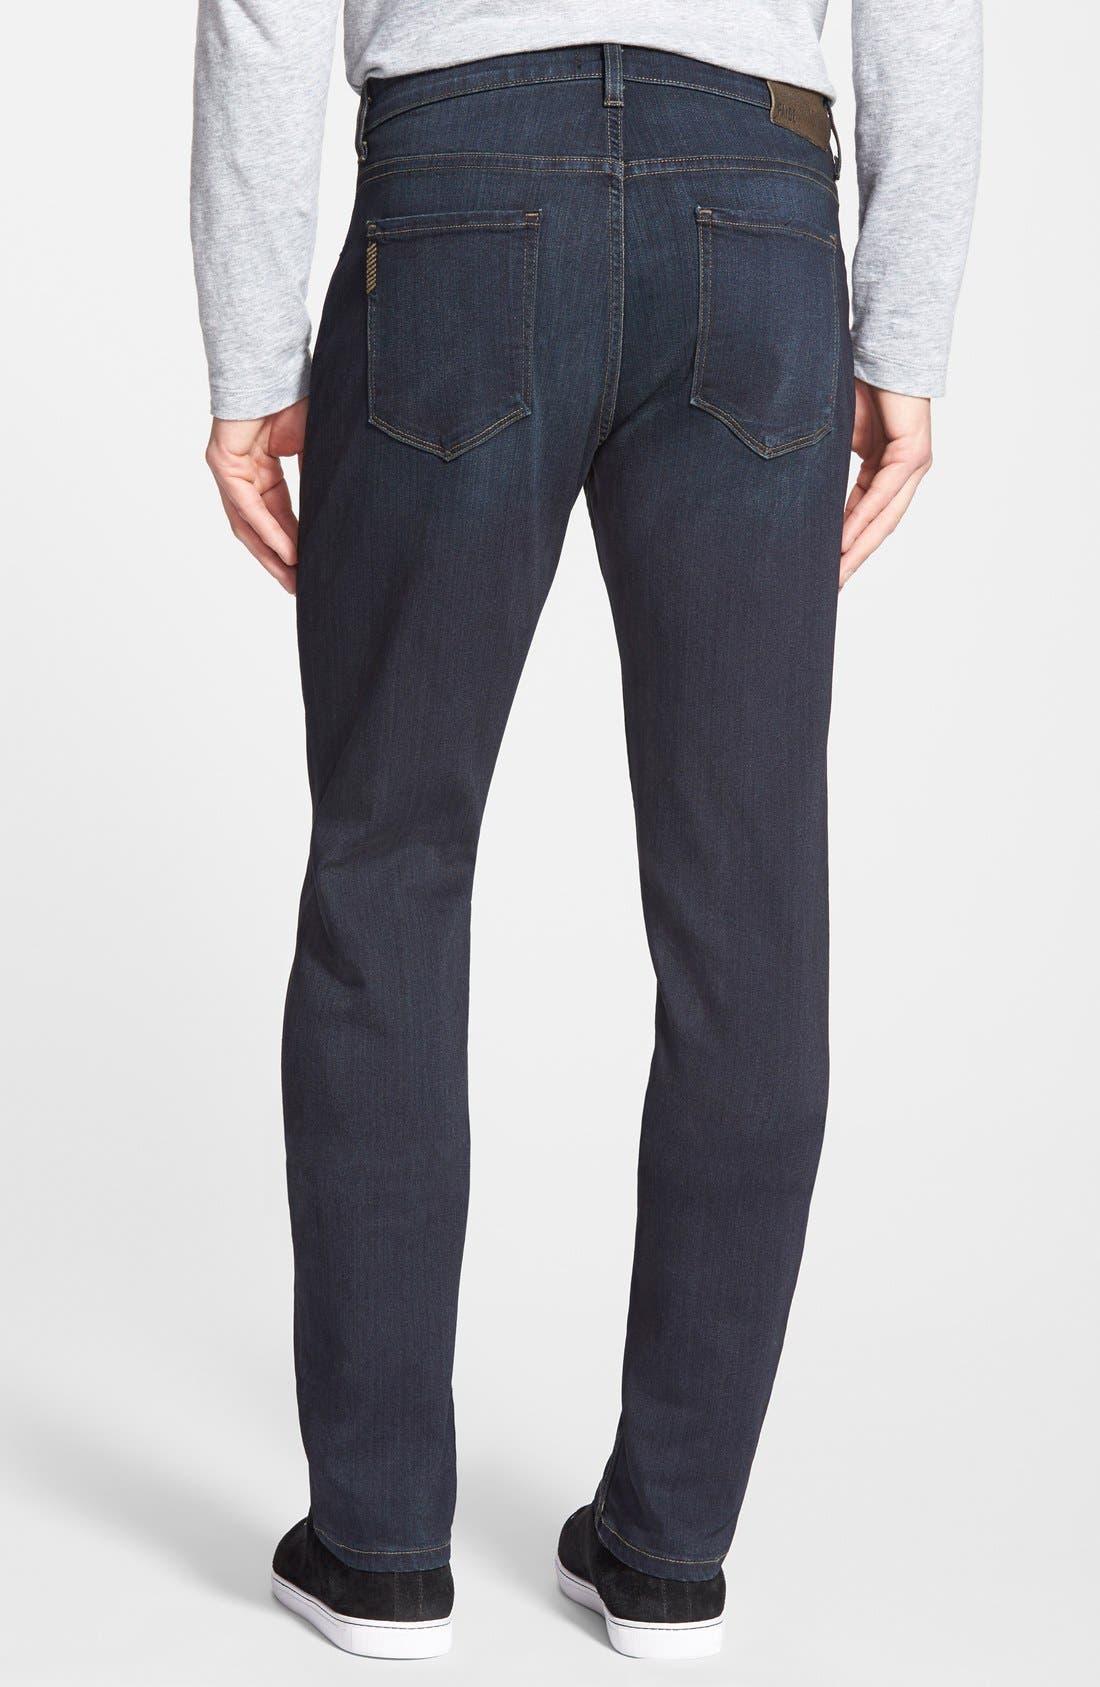 Transcend - Federal XL Slim Straight Leg Jeans,                             Alternate thumbnail 2, color,                             CELLAR/ CELLAR